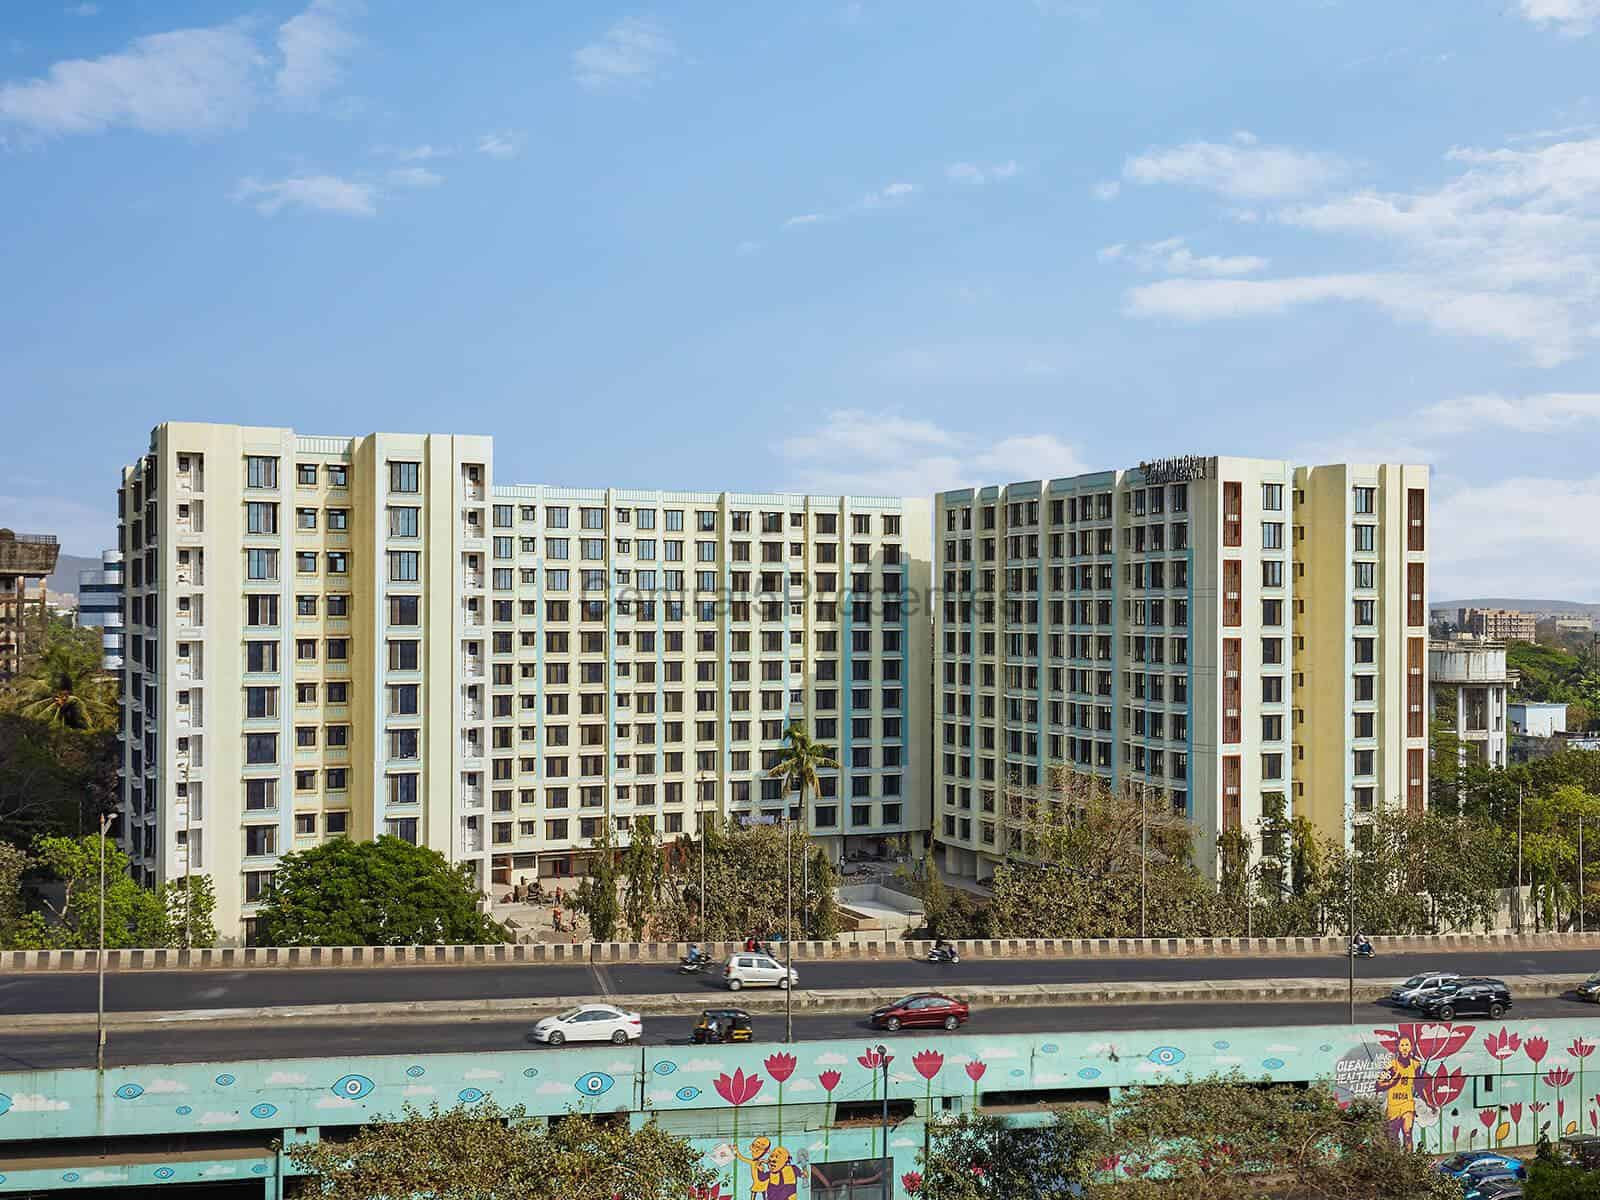 2BHK apartments for sale in Vile Parle East Mumbai